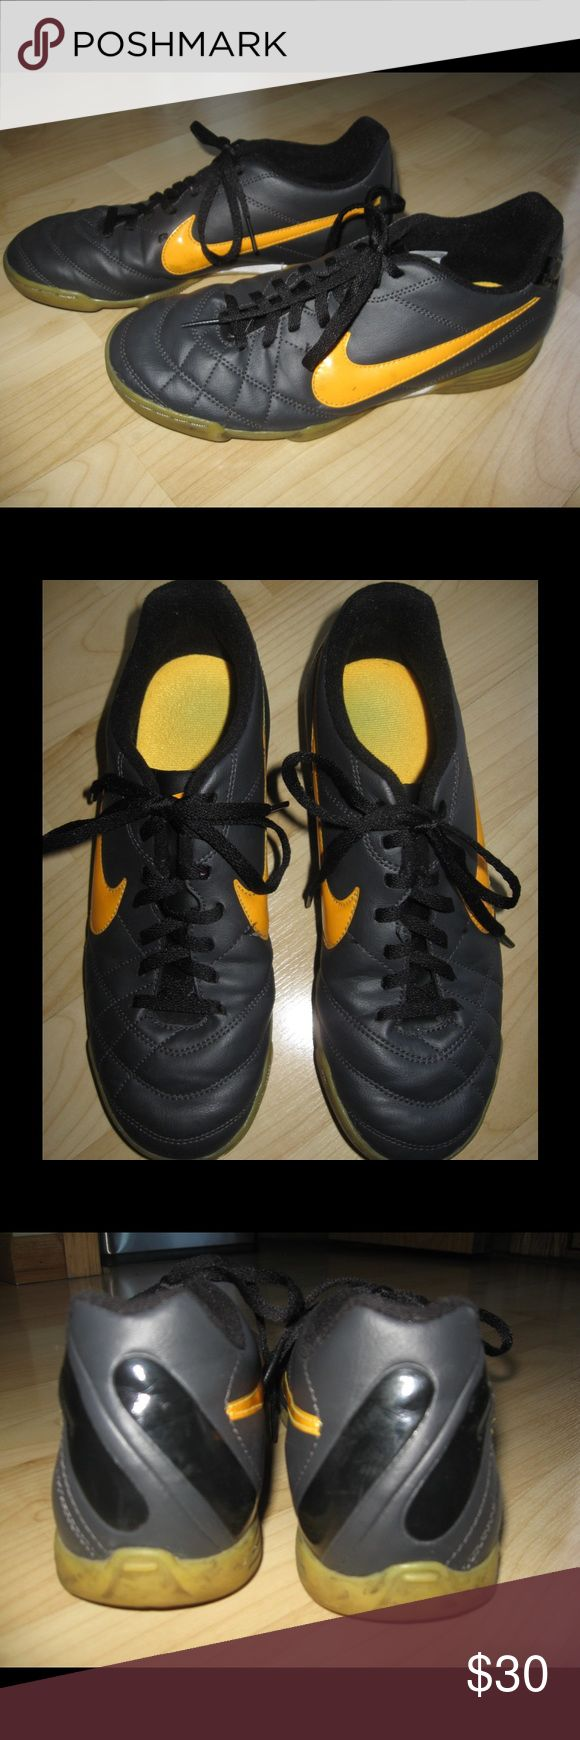 Nike Soccer Shoes Charcoal gray & yellow rubber sole soccer shoes. In EUC. Ask any questions! 📦Same/ Next Day Shipping 🚫Paypal/ Trades ✅Bundles 🚫Smoke Free Nike Shoes Athletic Shoes